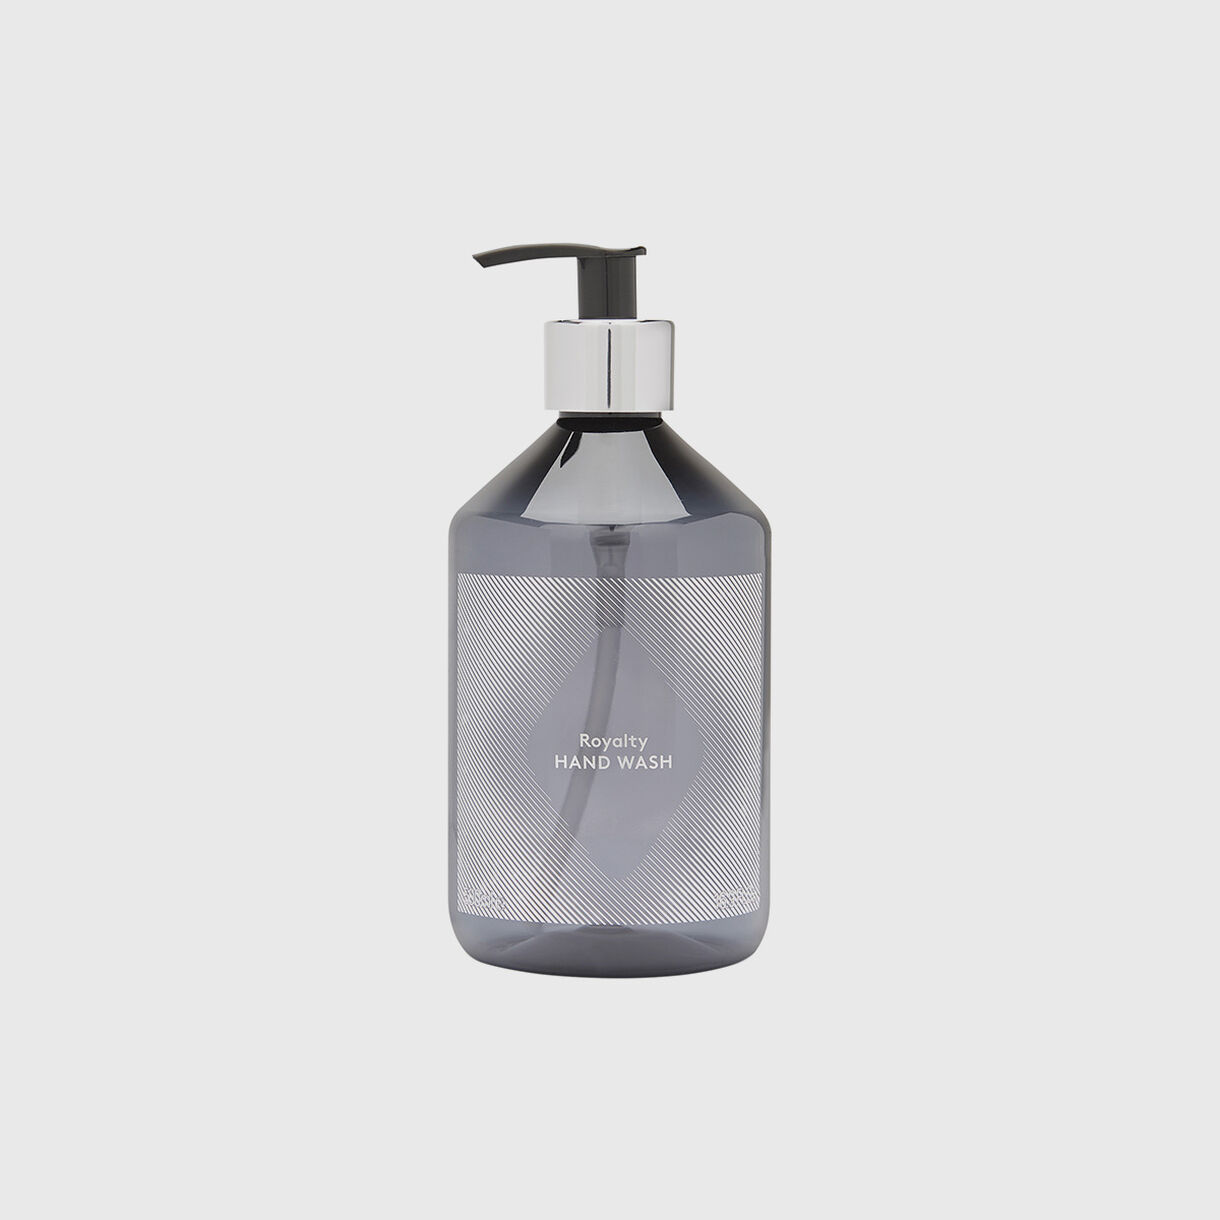 Eclectic Royalty Hand Wash, 500ml